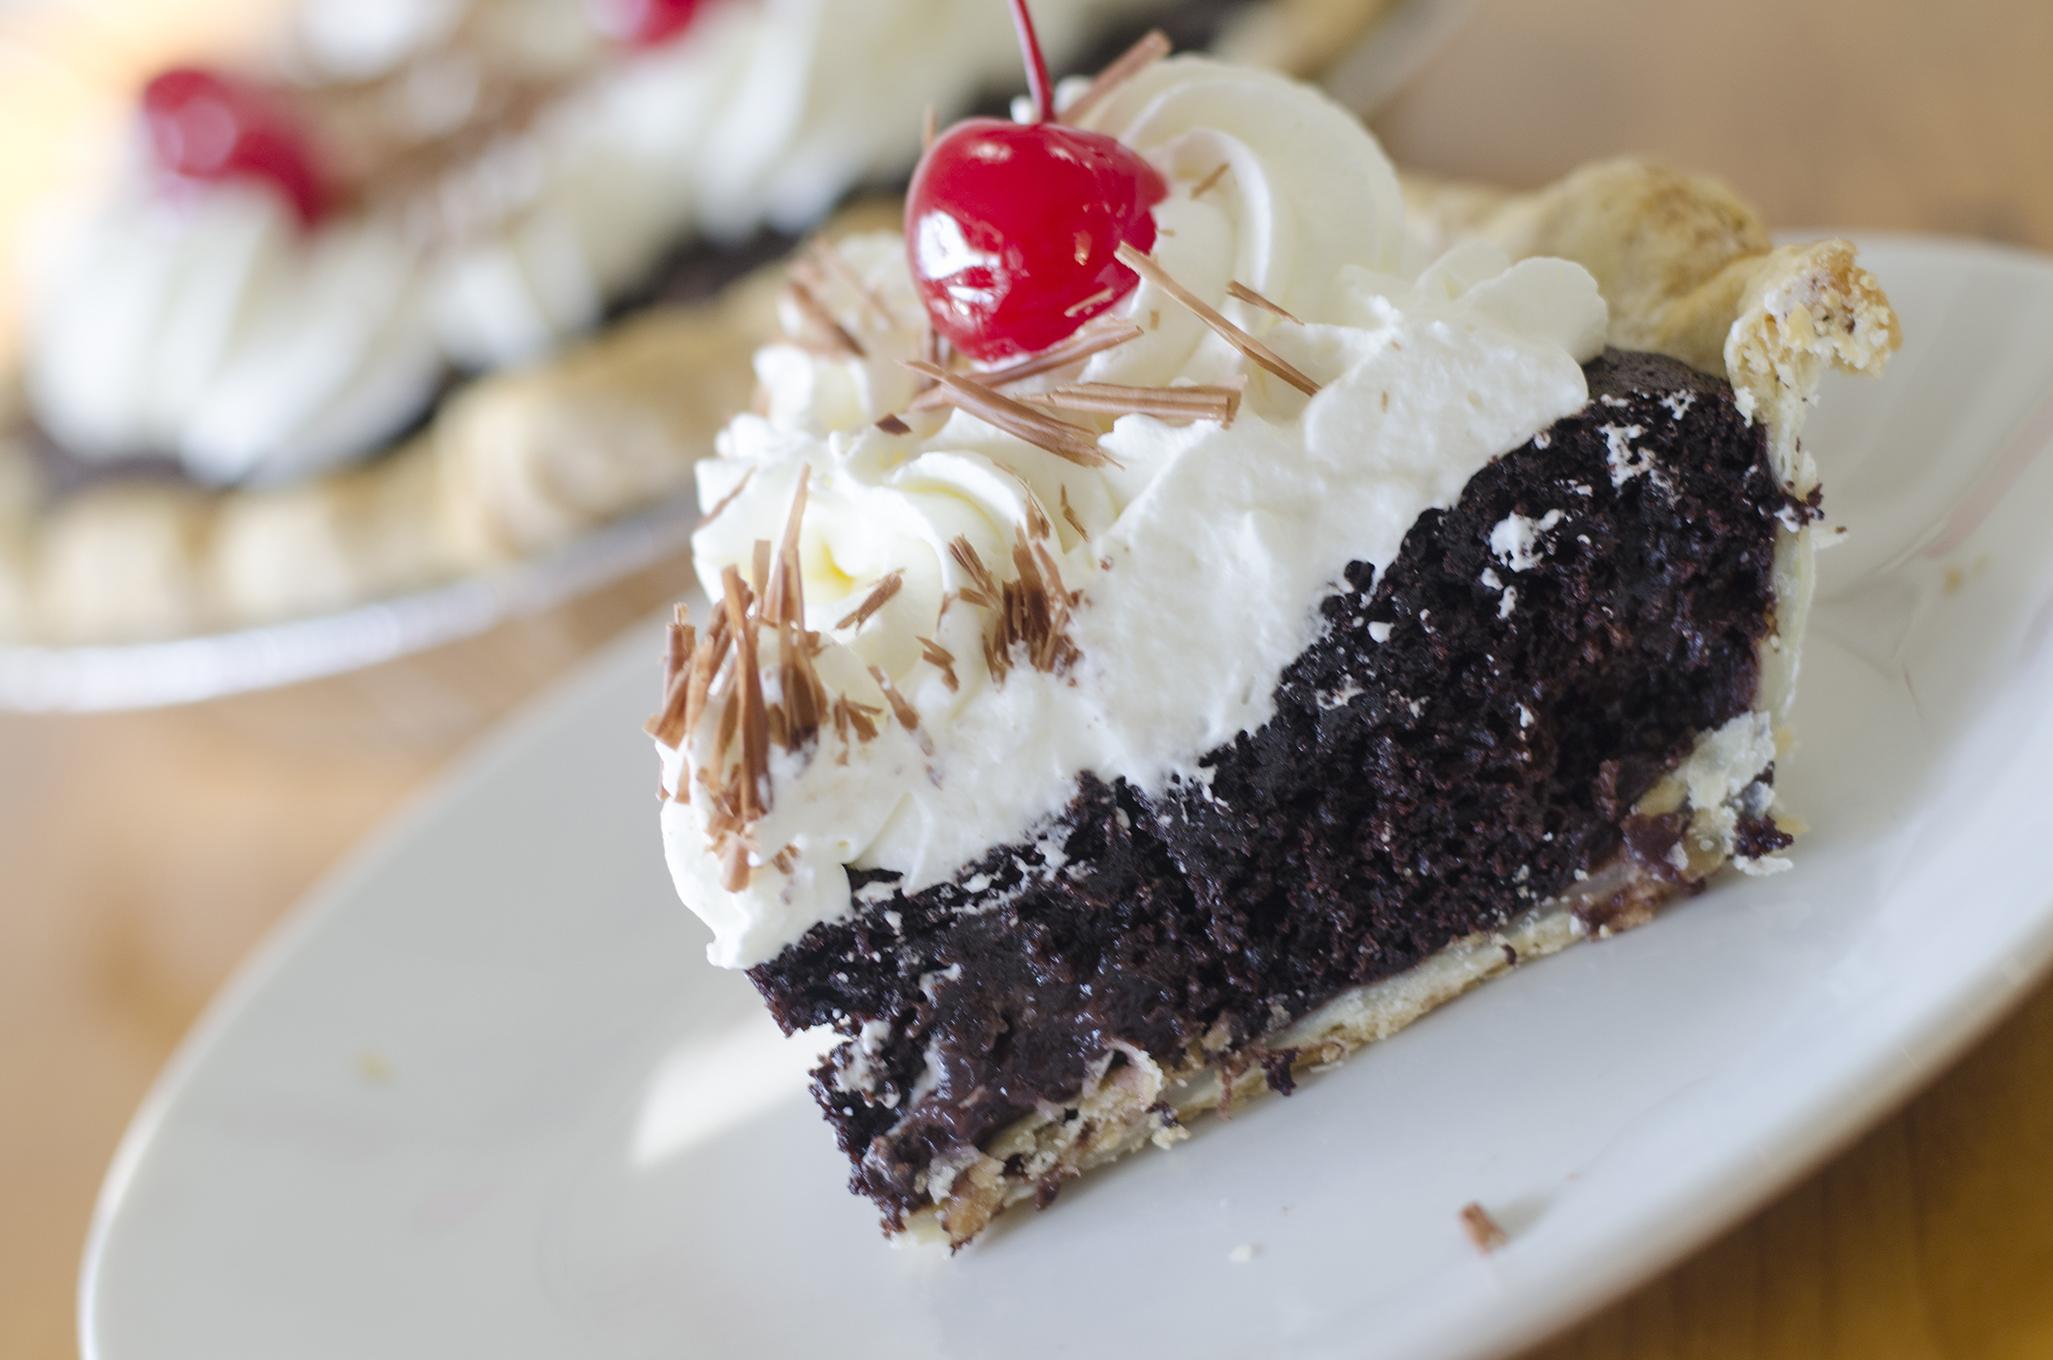 Black forest pie from Riverside Pie Cafe in Windsor, Ontario.